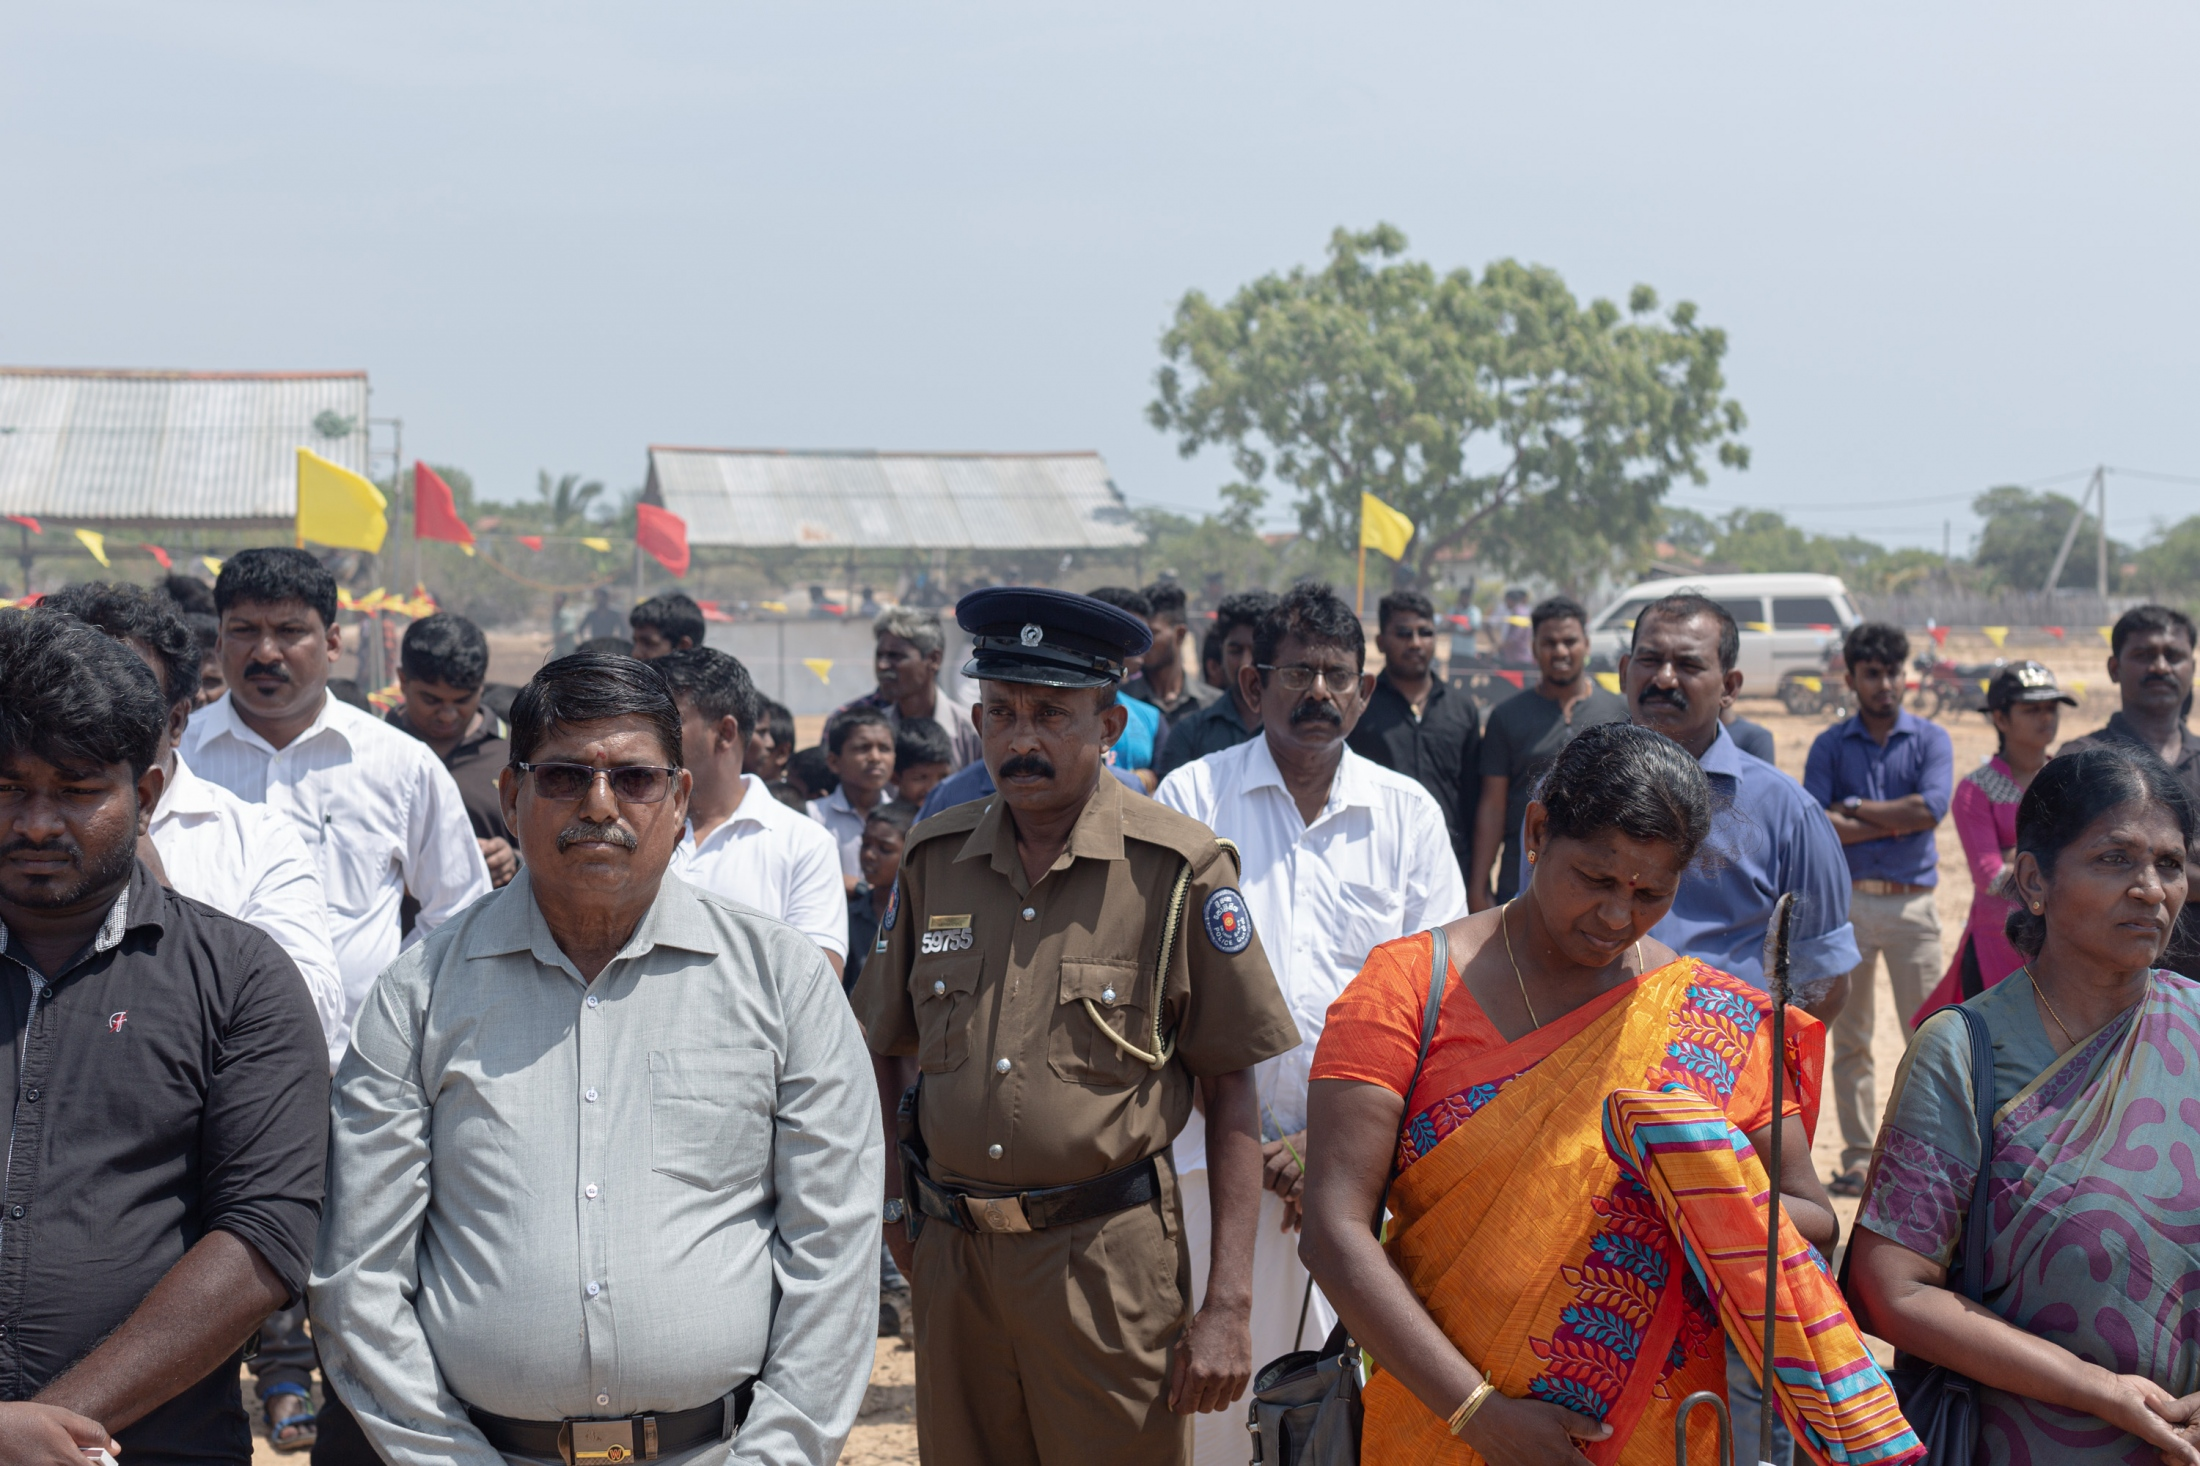 The army surround the Mullivaikkal Remembrance Day Service, taking down identification details of everyone in attendance. In the last decade, enforced disappearances (when a person is secretly abducted or imprisoned by a state) have been a widespread tactic against those campaigning for the truth about how the war ended and justice for those responsible. (May, 2019)